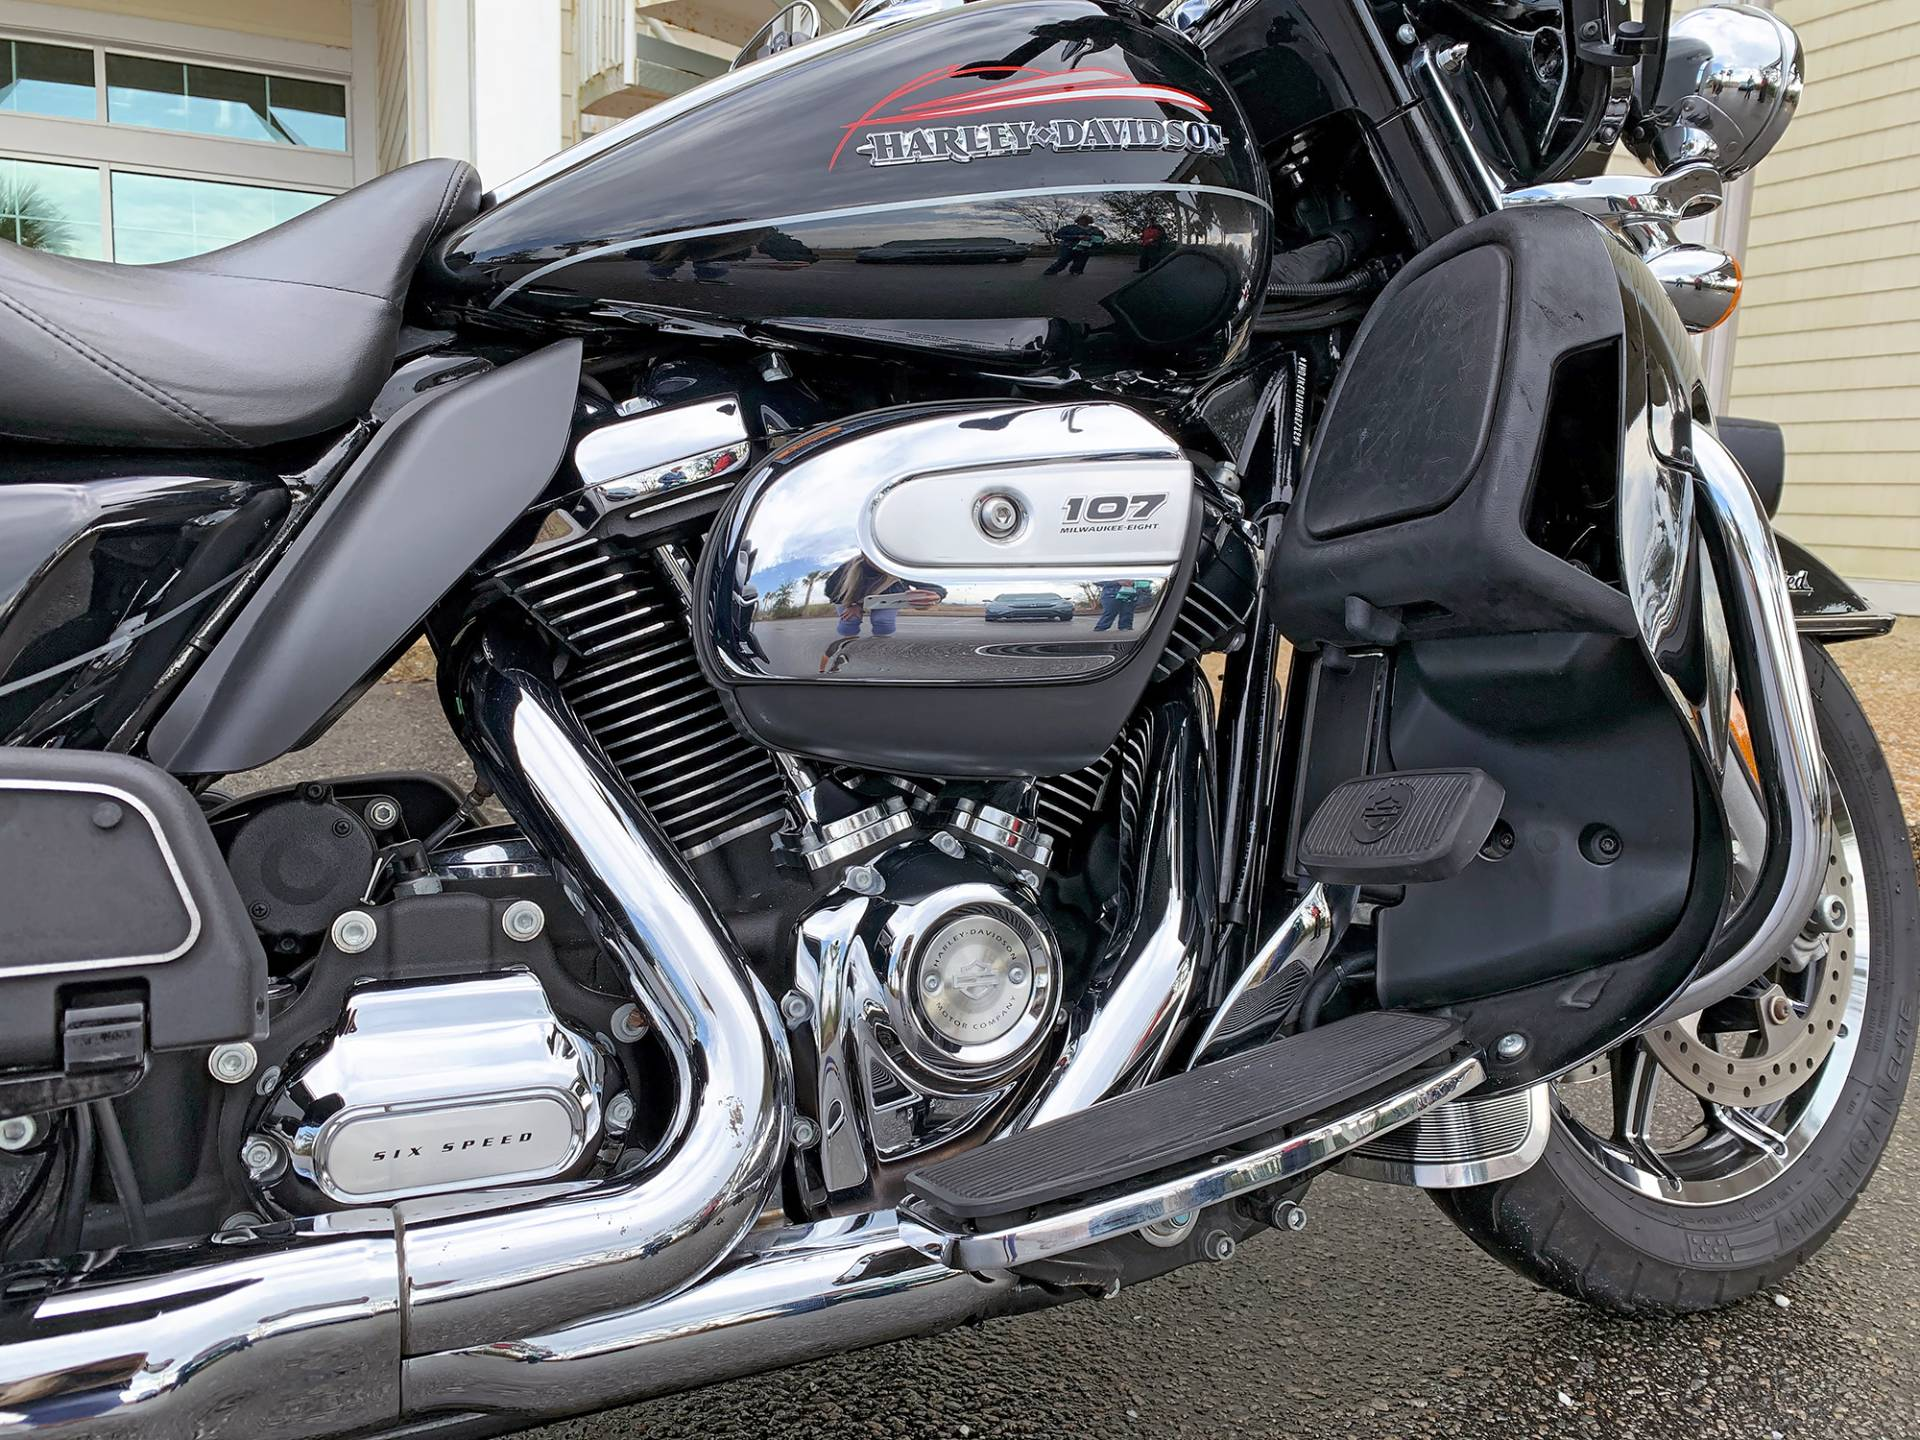 2017 Harley-Davidson Electra Glide® Ultra Limited® in Jacksonville, North Carolina - Photo 8